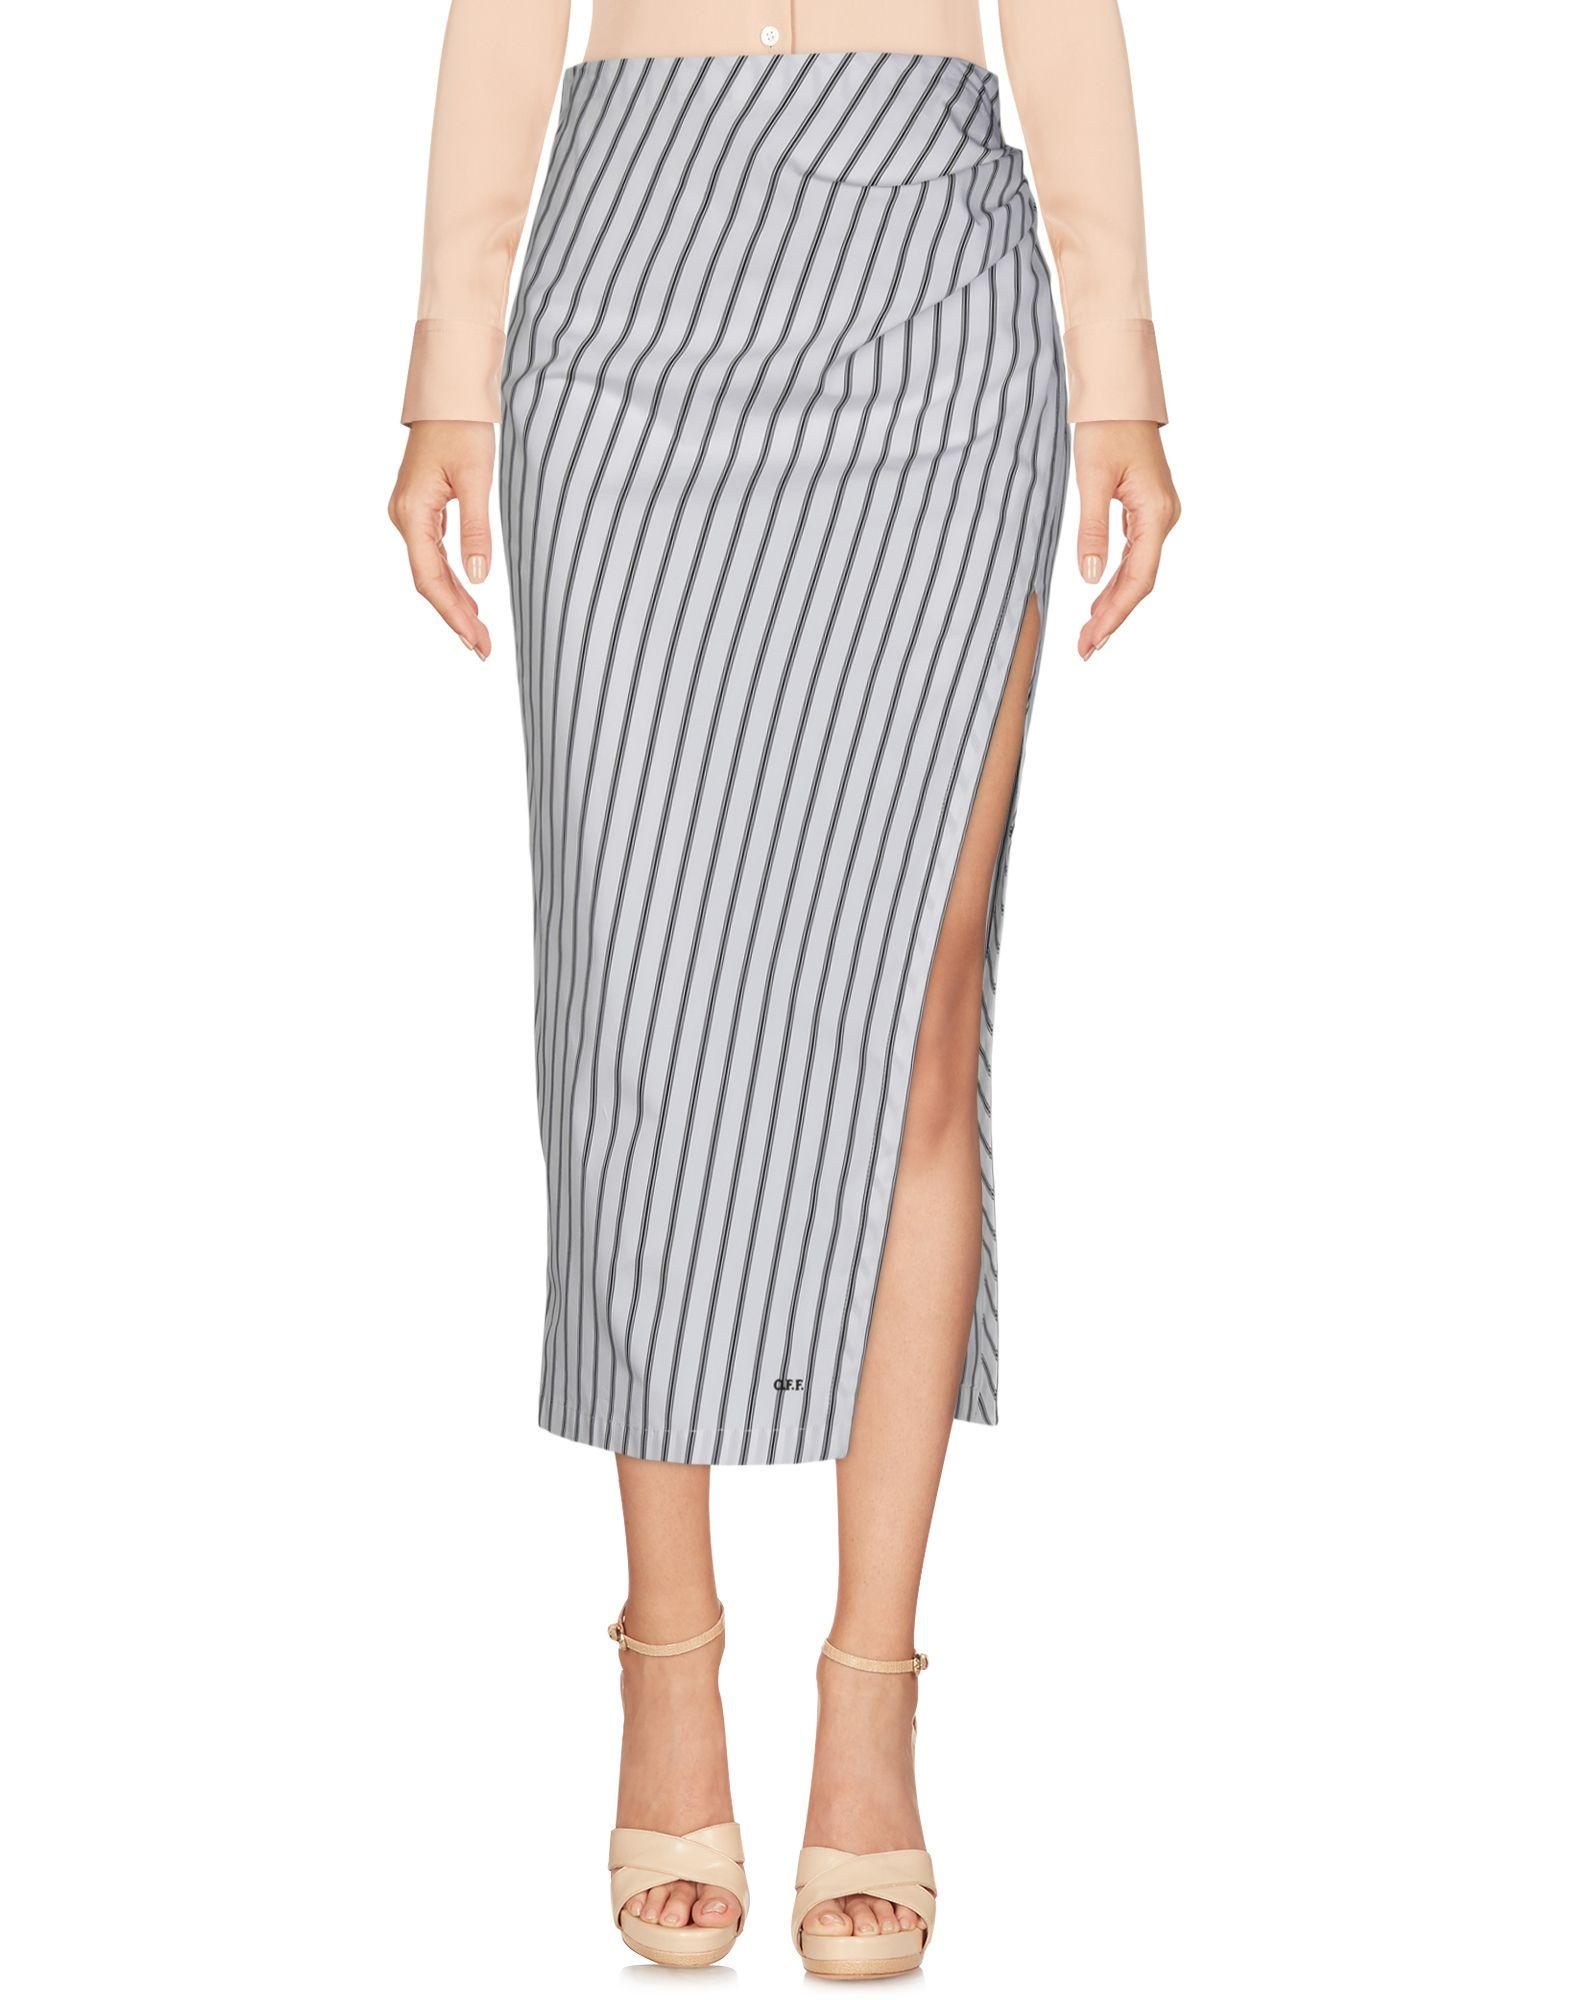 15676b7d1092 Off-White c o Virgil Abloh 3 4 Length Skirt in White - Save 66% - Lyst